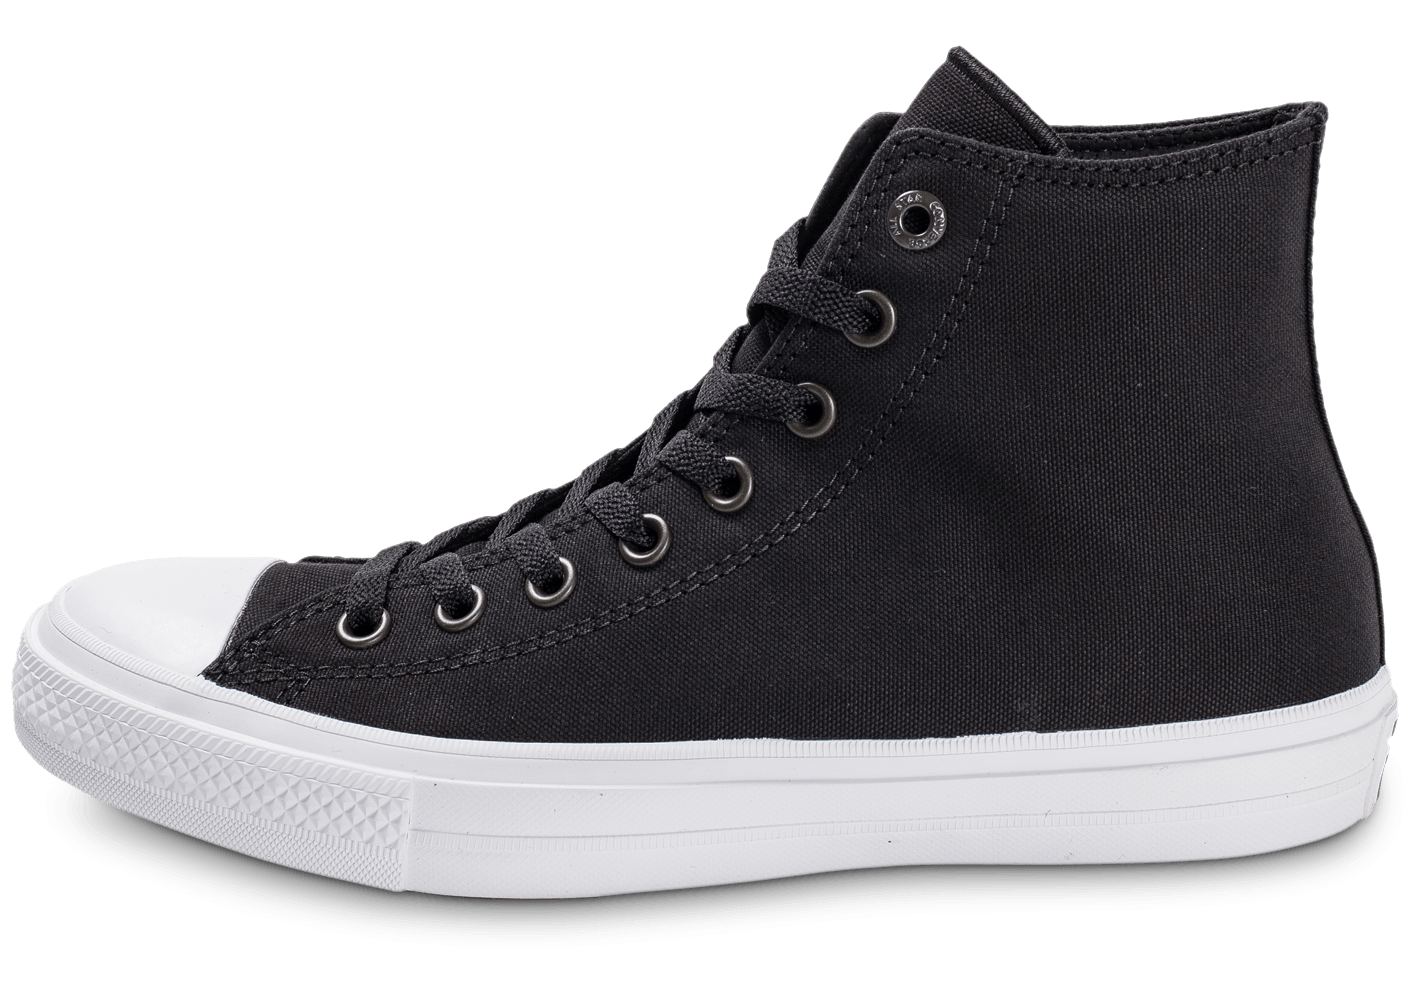 Converse Chuck Taylor All-Star 2 Montante noire - Chaussures Baskets homme  - Chausport 4a3f2aac697d